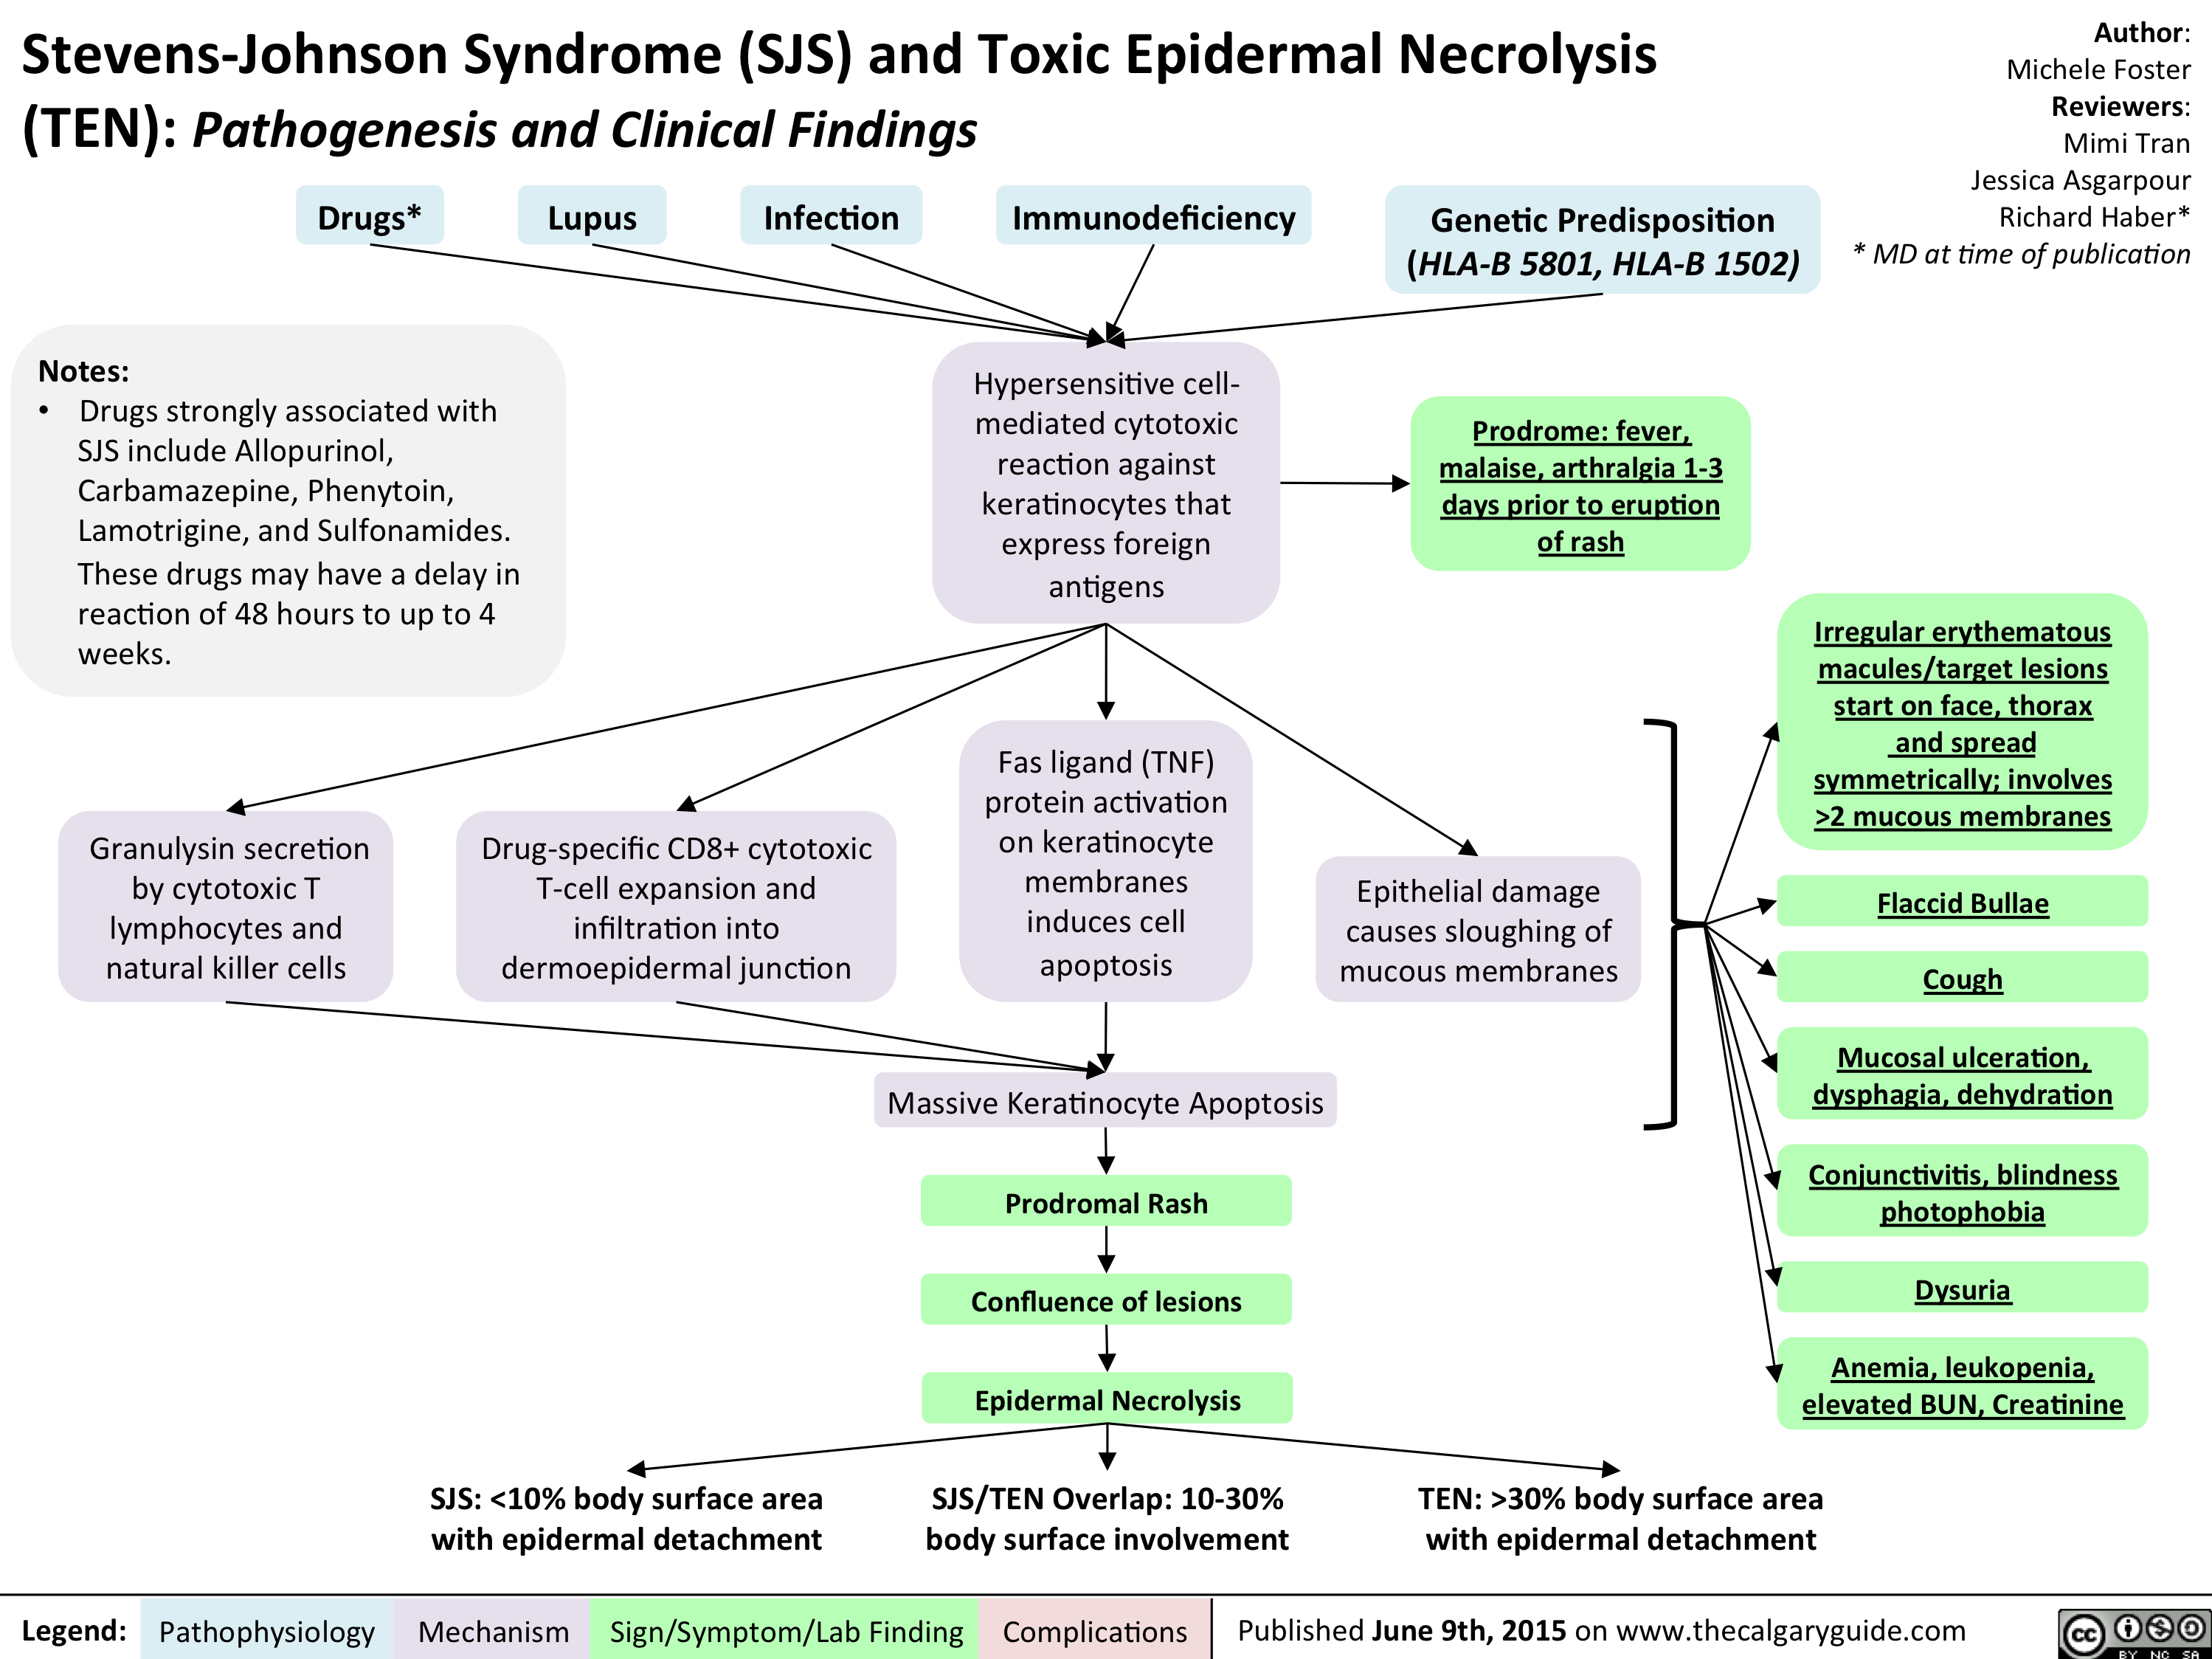 Stevens-Johnson Syndrome (SJS) and Toxic Epidermal Necrolysis (TEN) - Pathogenesis and Clinical Findings